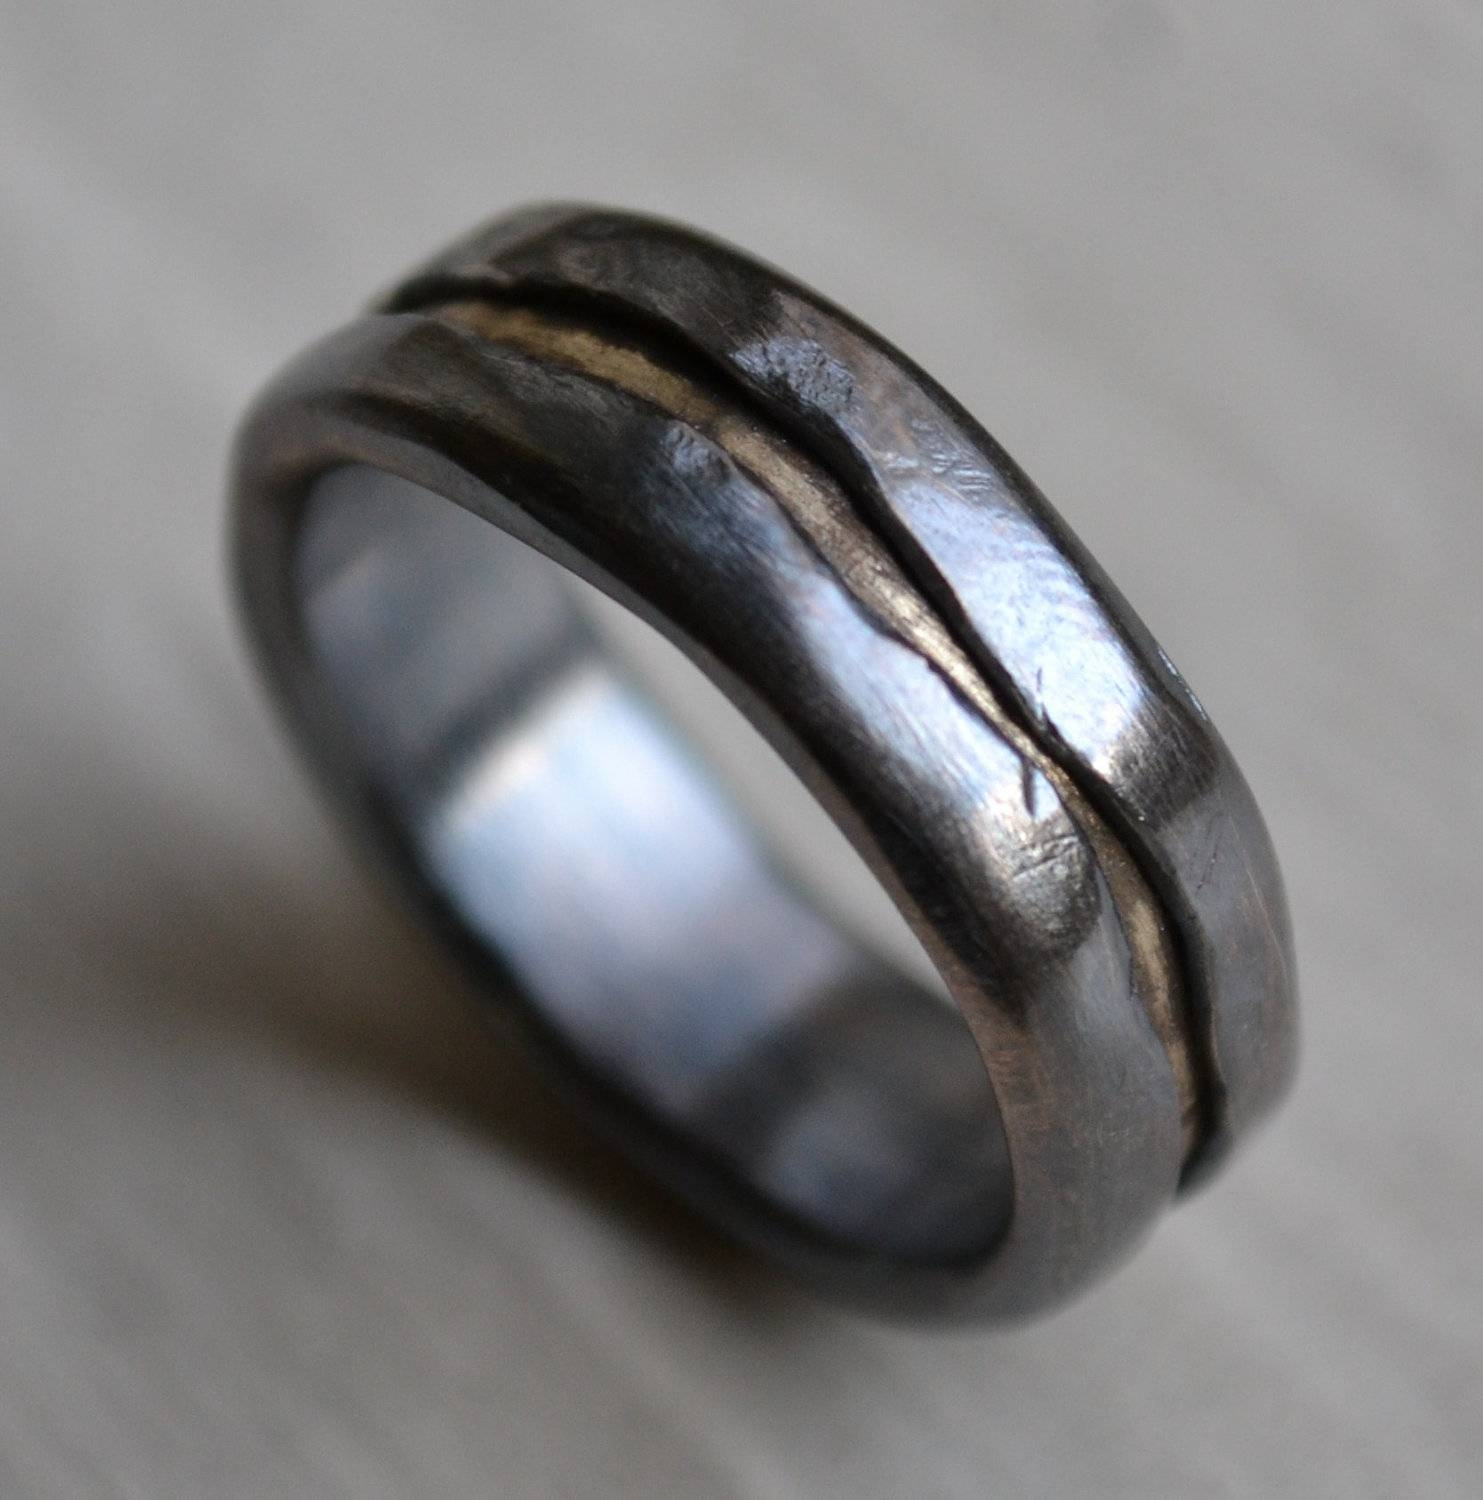 Beloved Figure Wedding Rings With Opal Inside Wedding Rings Intended For Unusual Wedding Rings Designs (View 2 of 15)